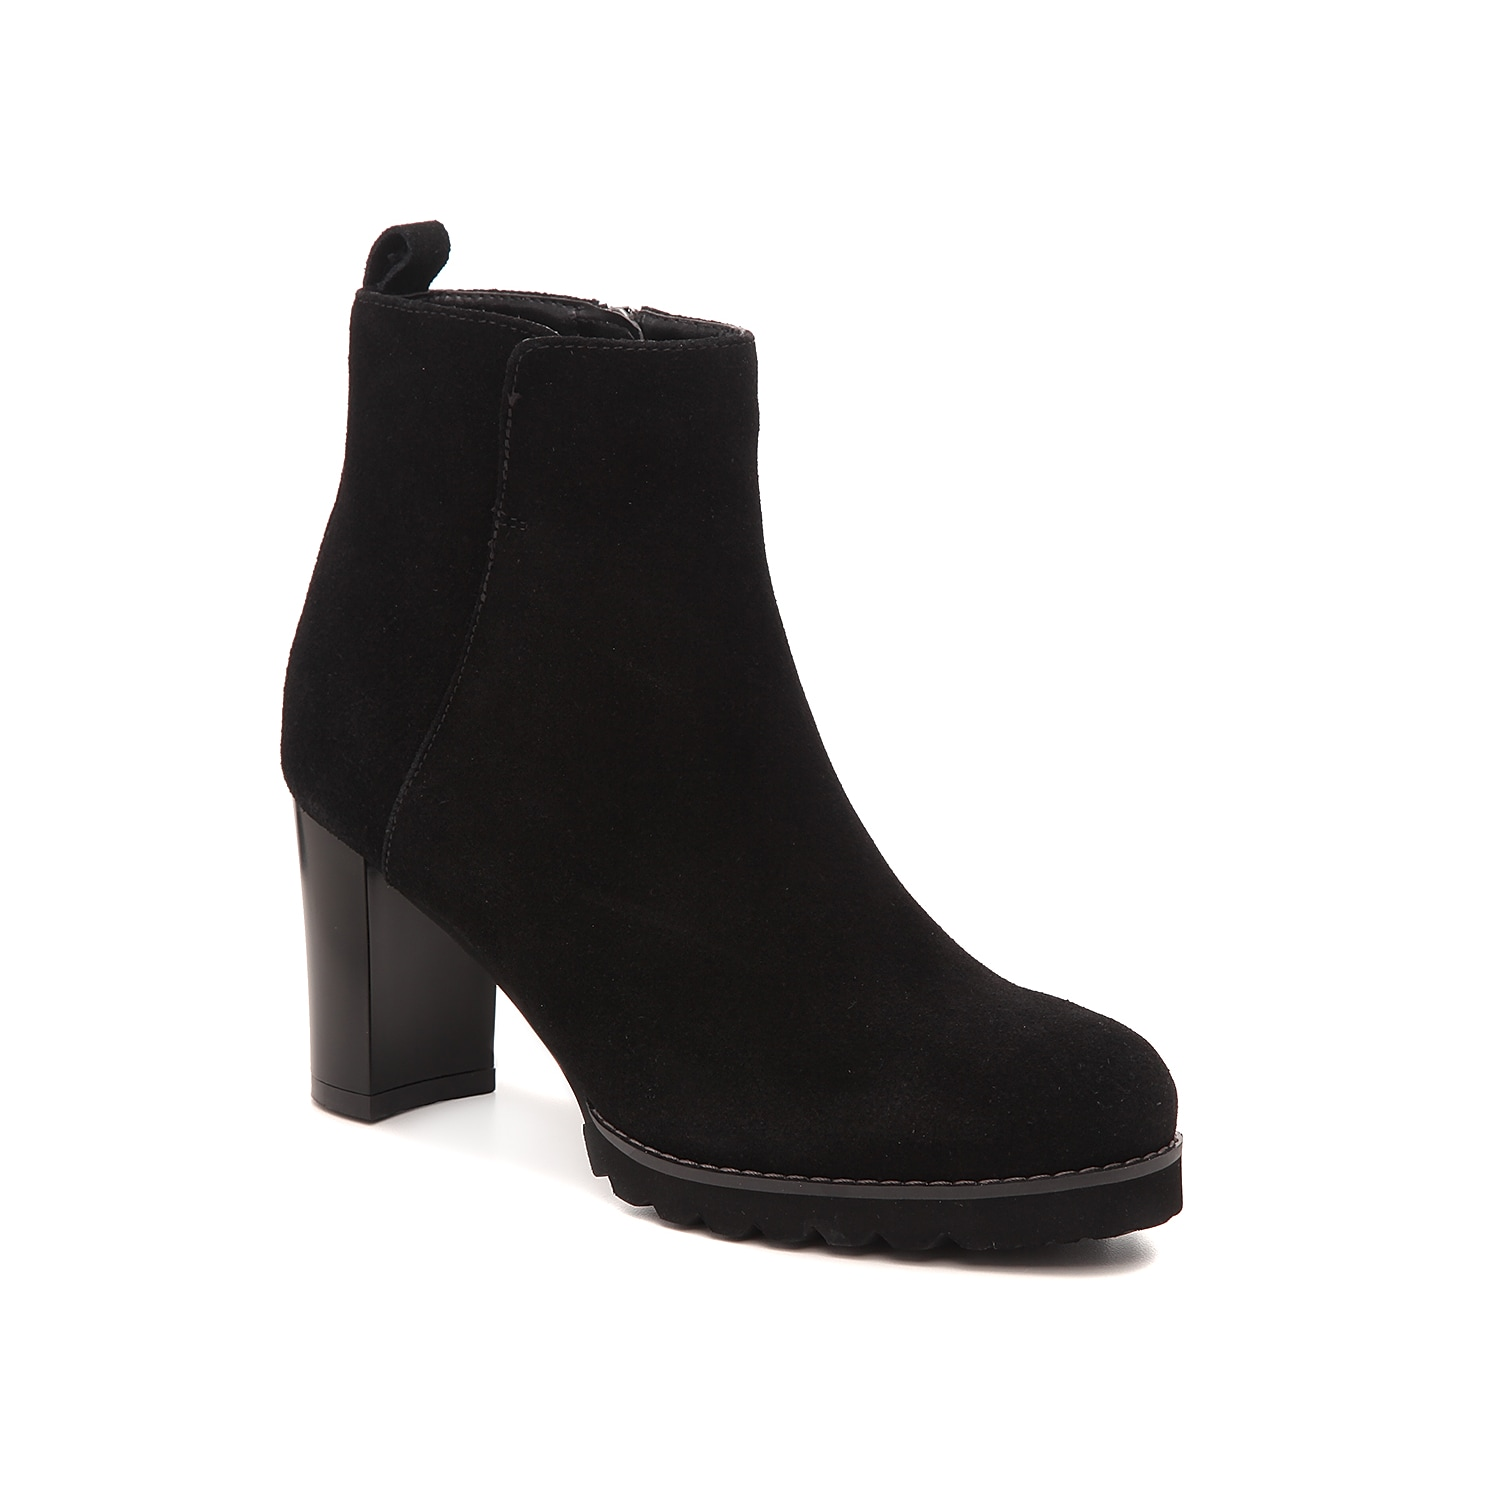 Take on wet or dry days in the Rana bootie from Blondo. These waterproof ankle boots feature a soft suede construction and a sturdy block heel to give your look a boost.